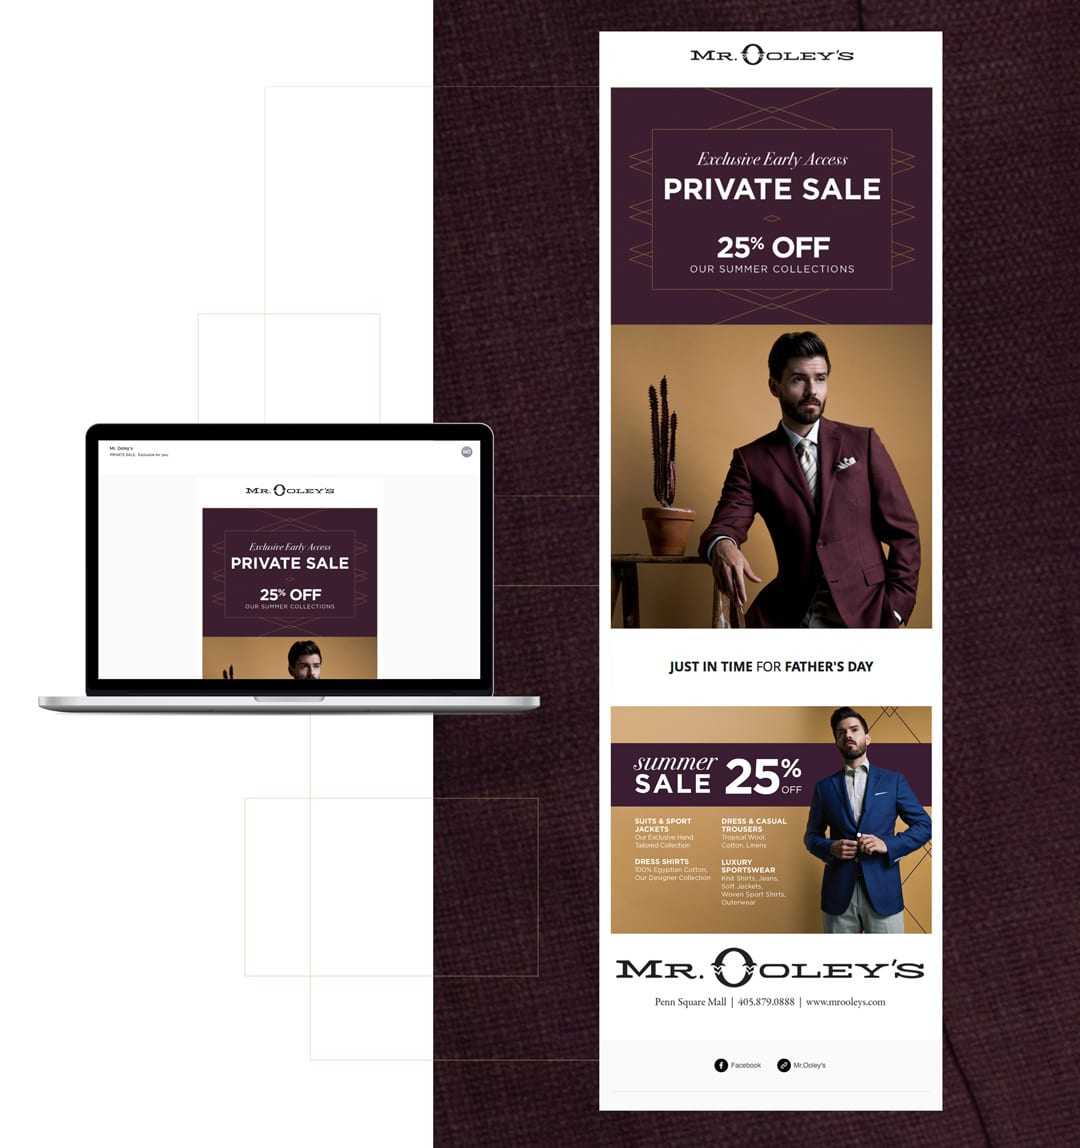 Mr. Ooley's Email Campaign by Liquid Media